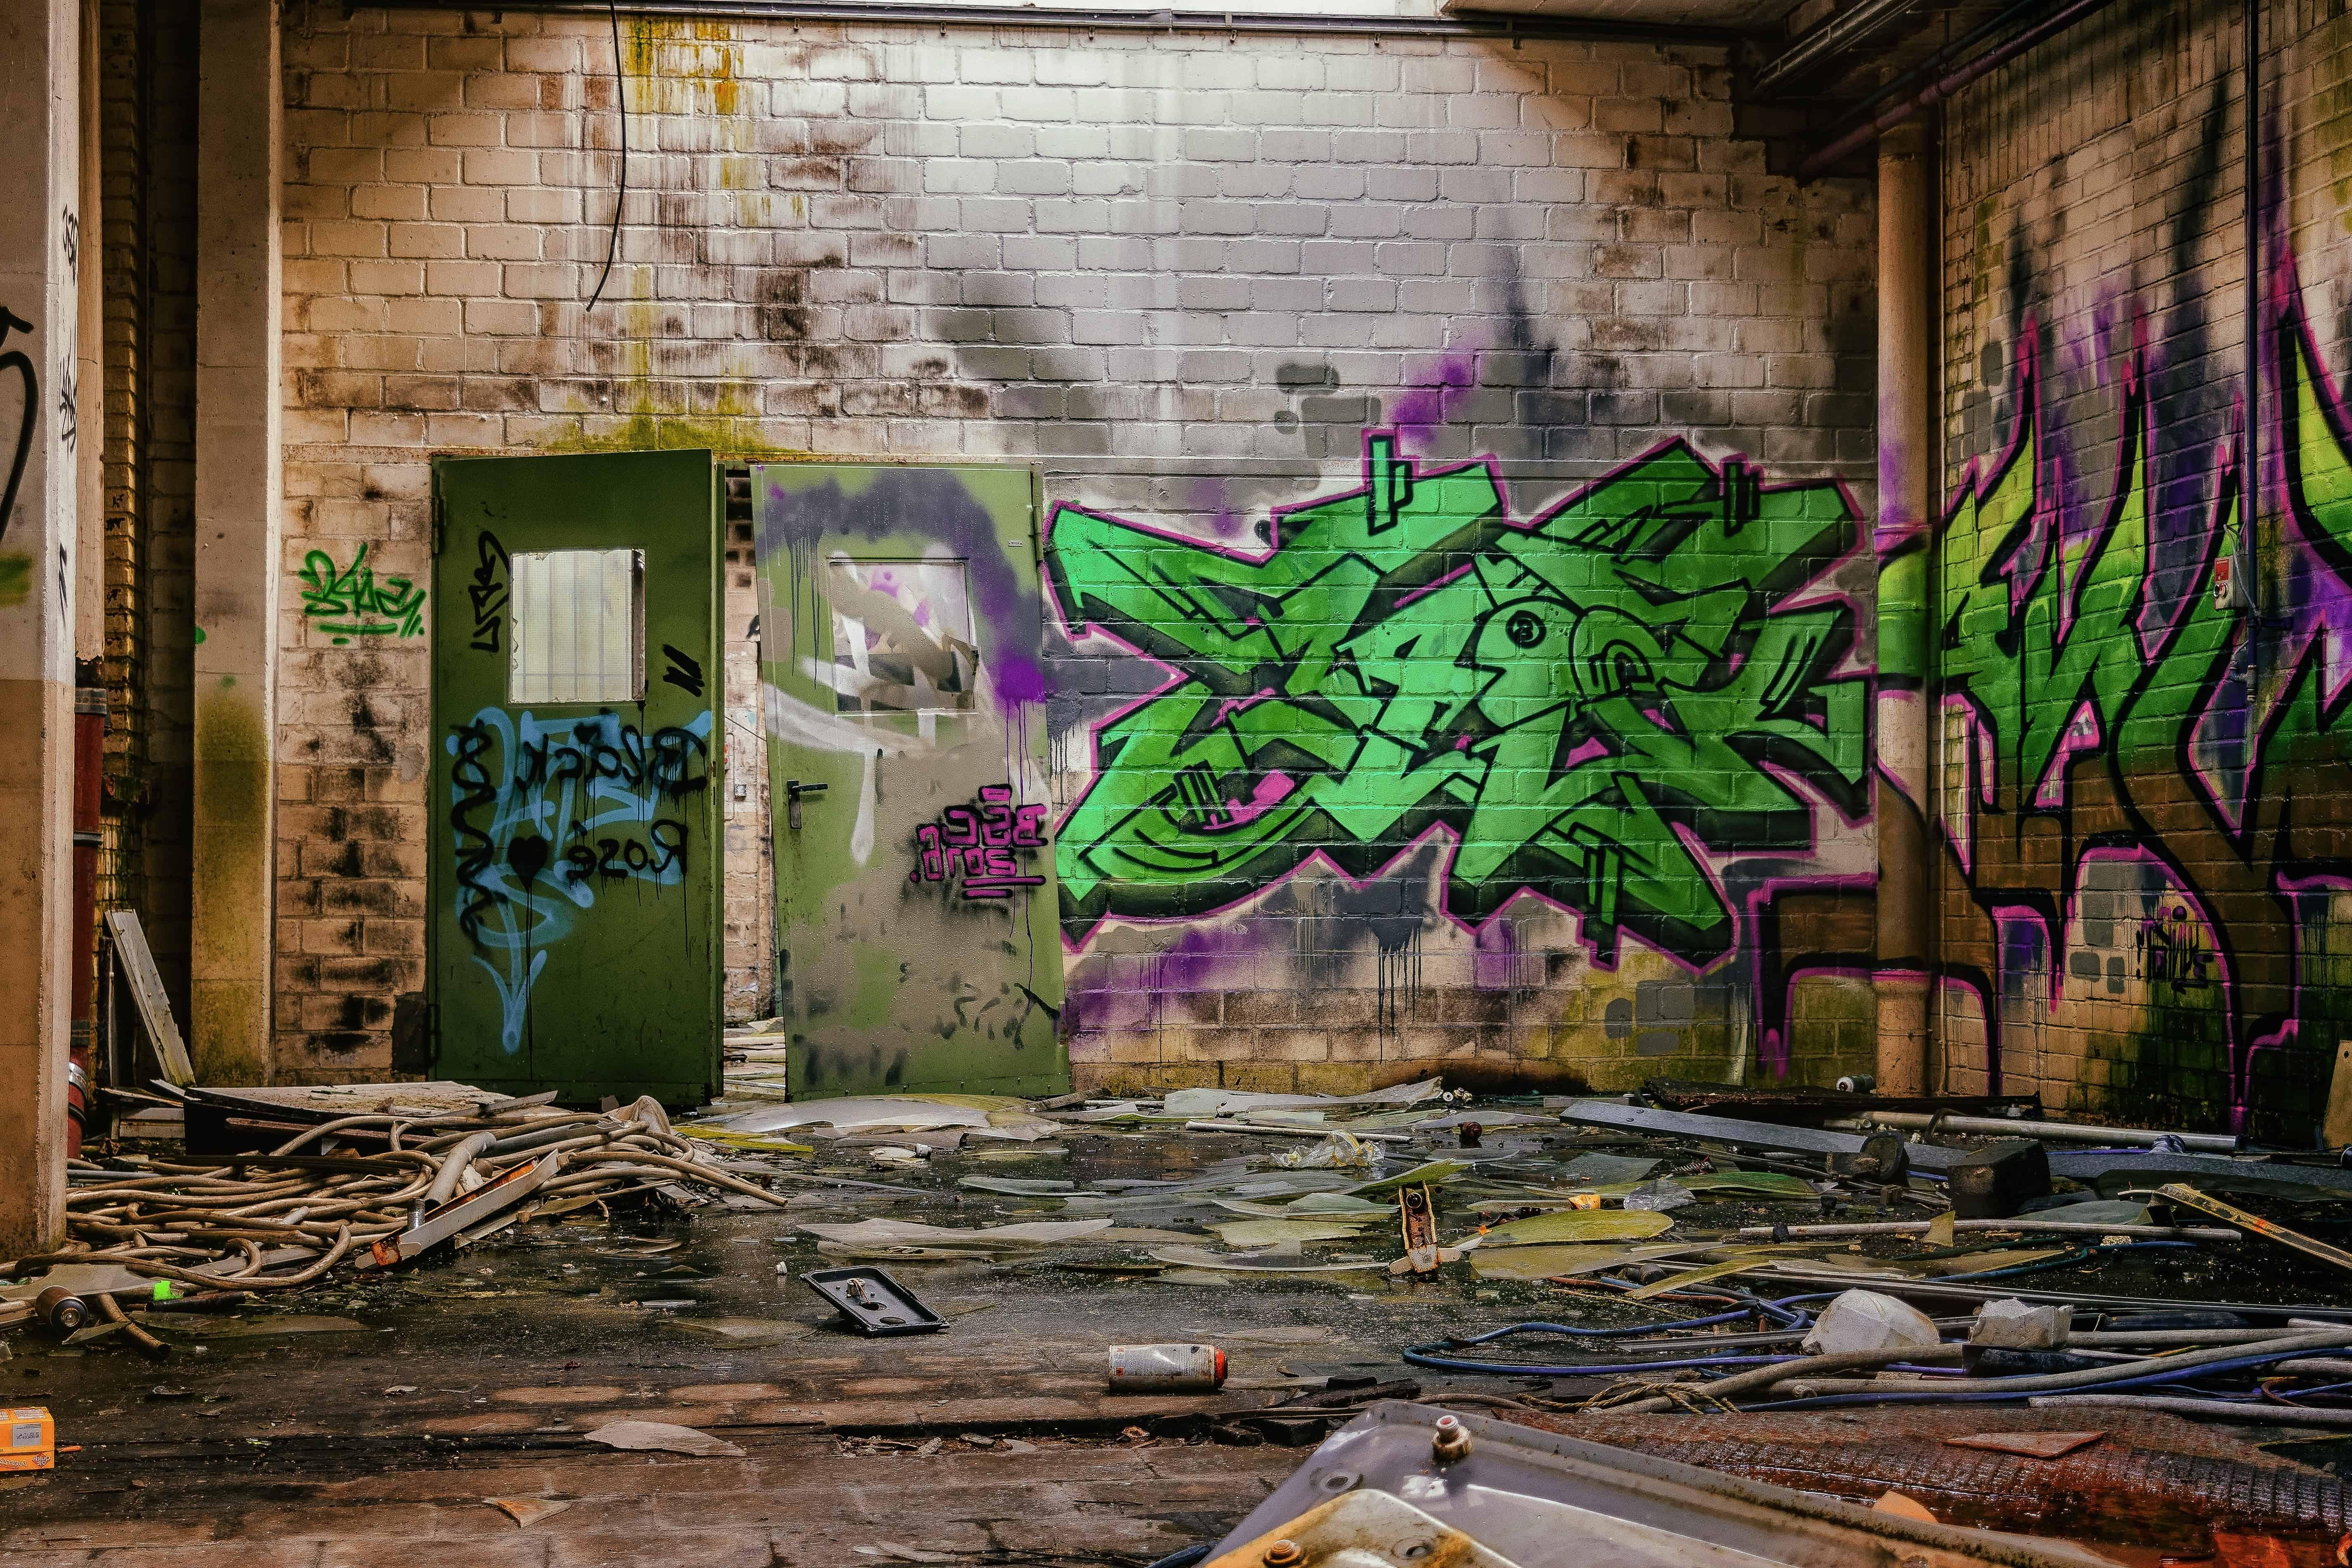 Top Hd Wallpapers 1080p Graffiti Wallpapers Photos And Desktop Backgrounds Up To